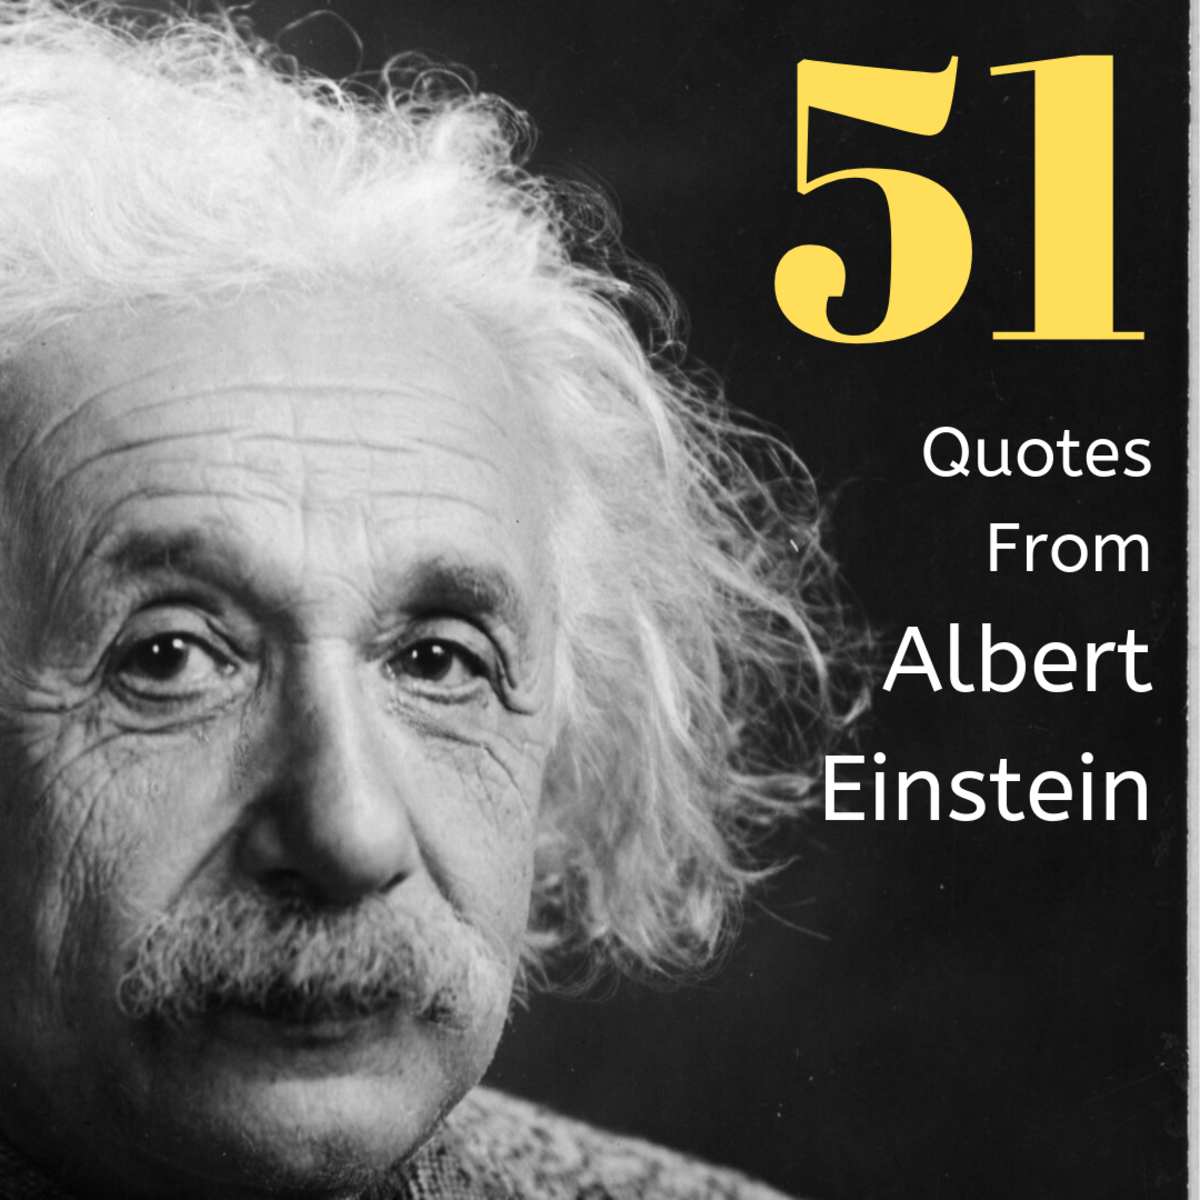 Explore some famous quotes from Einstein about various topics.